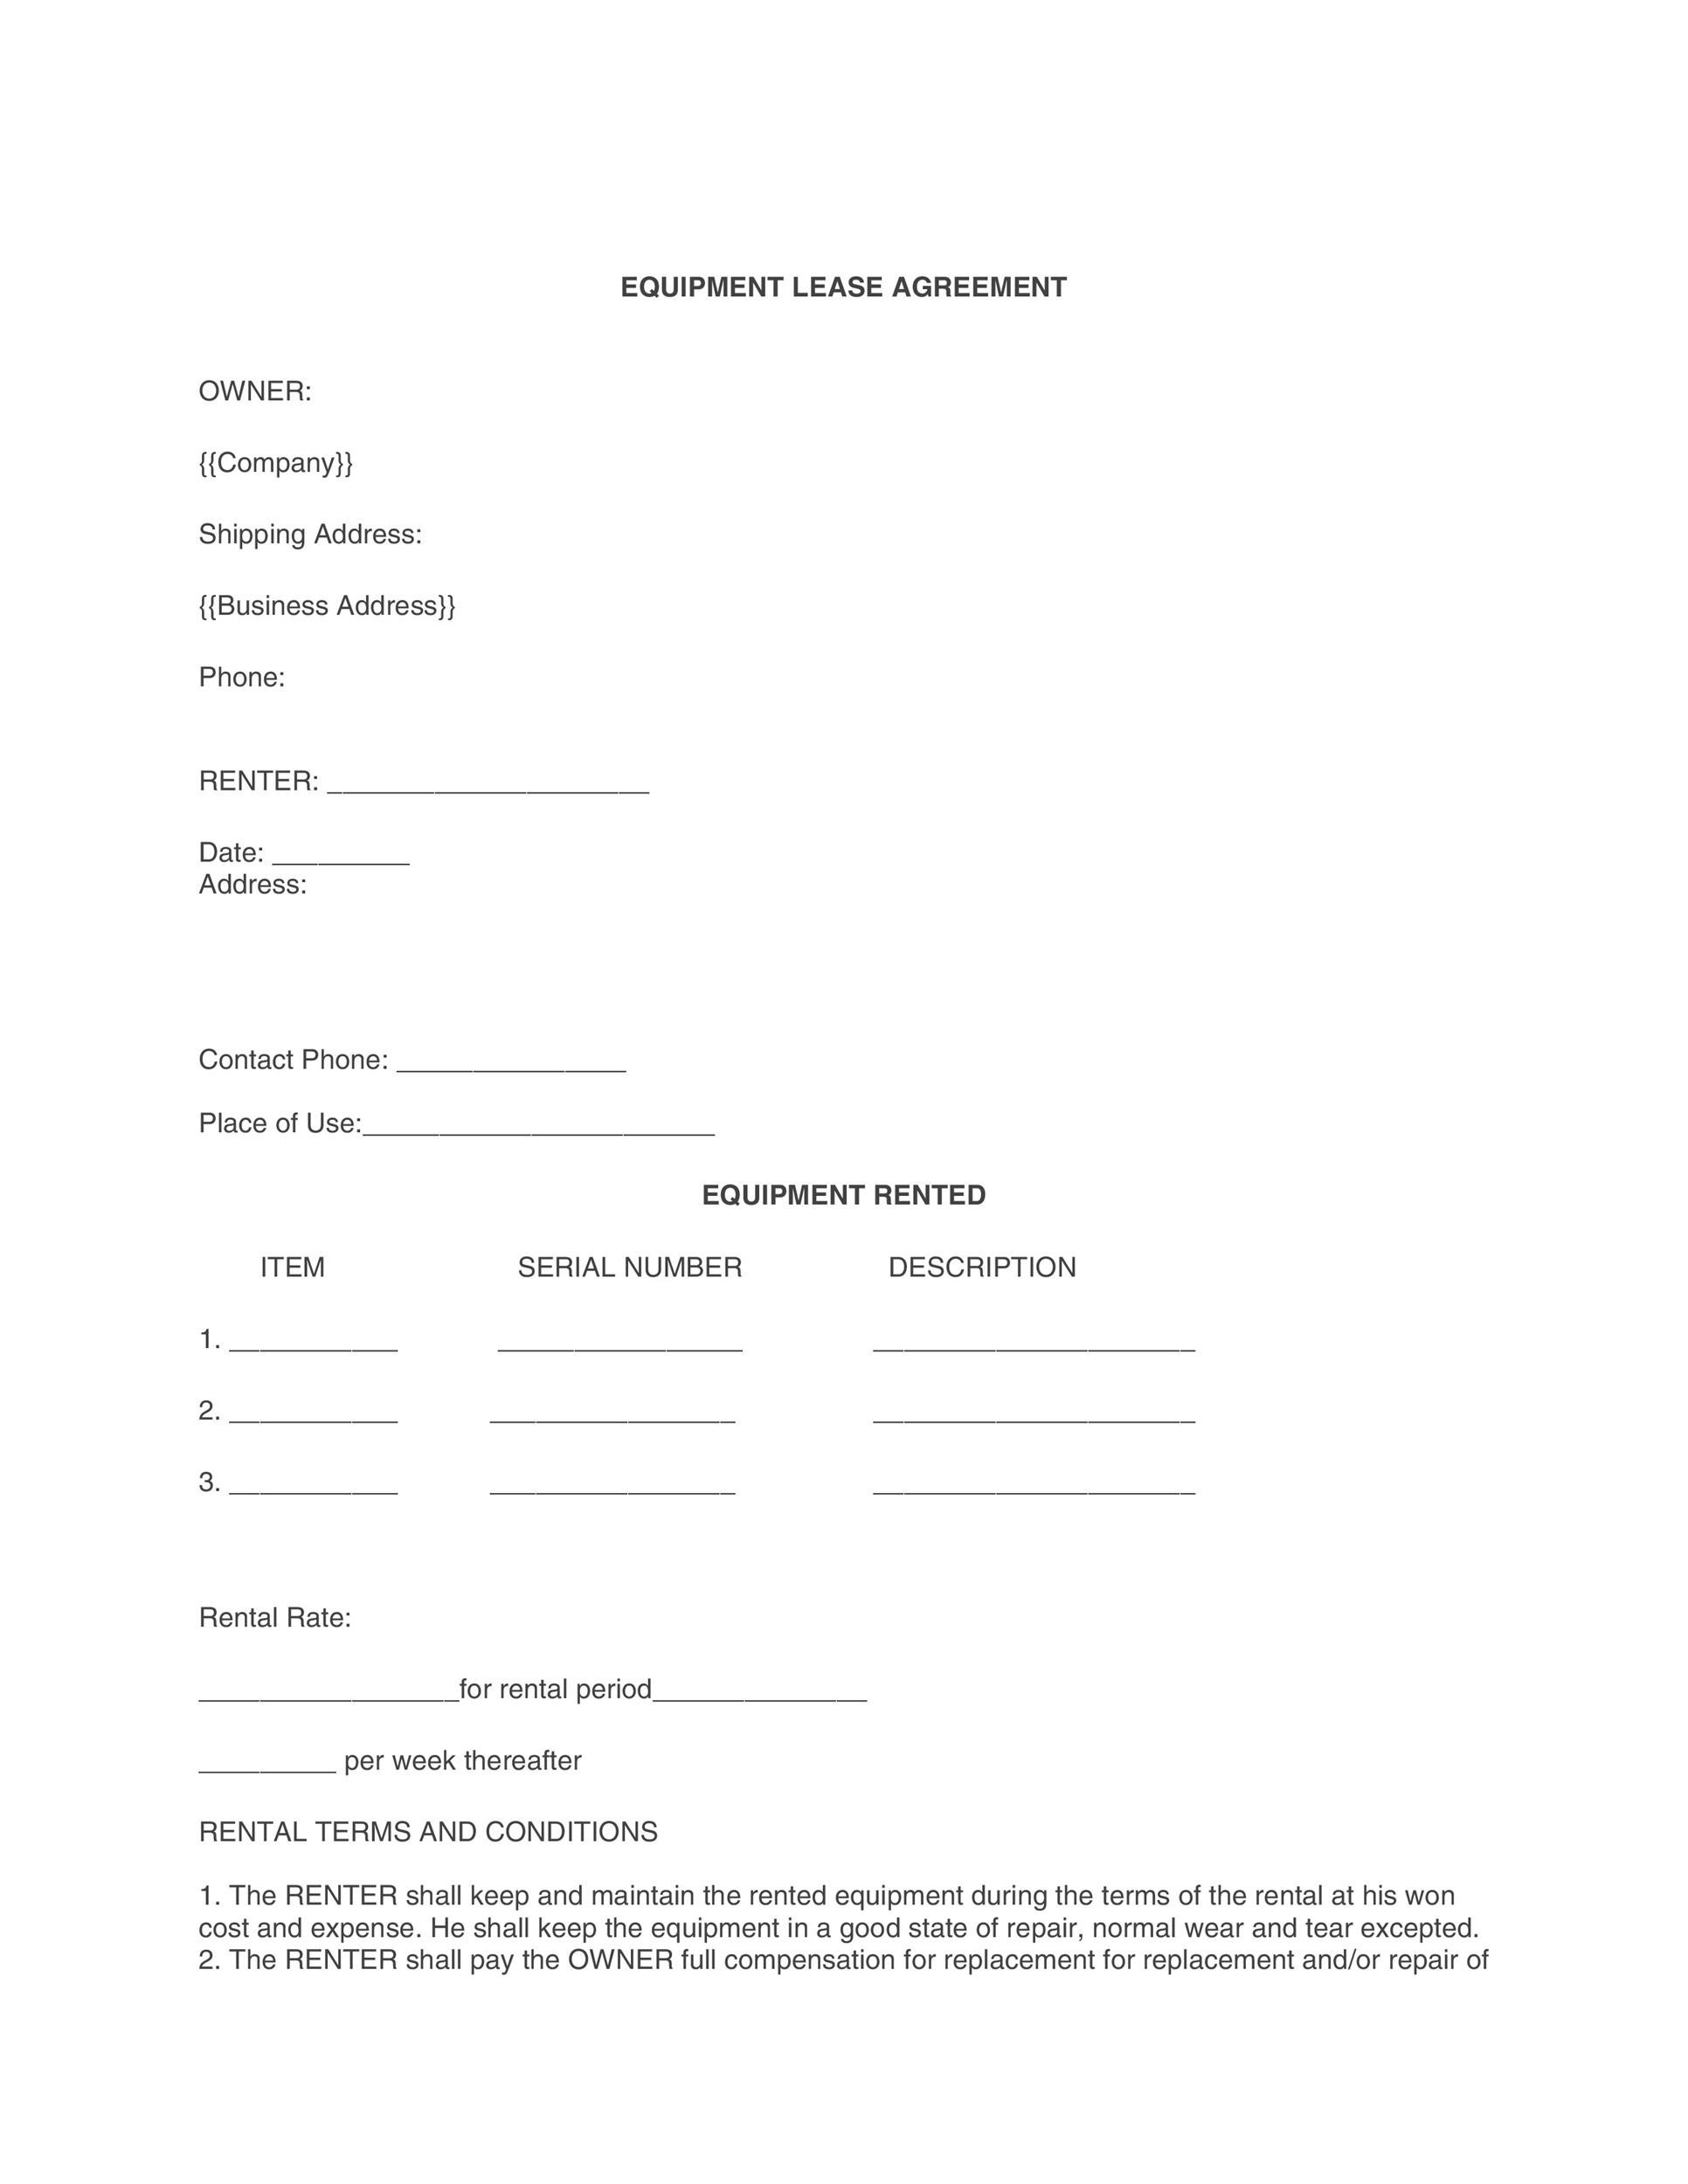 Free equipment lease agreement 11